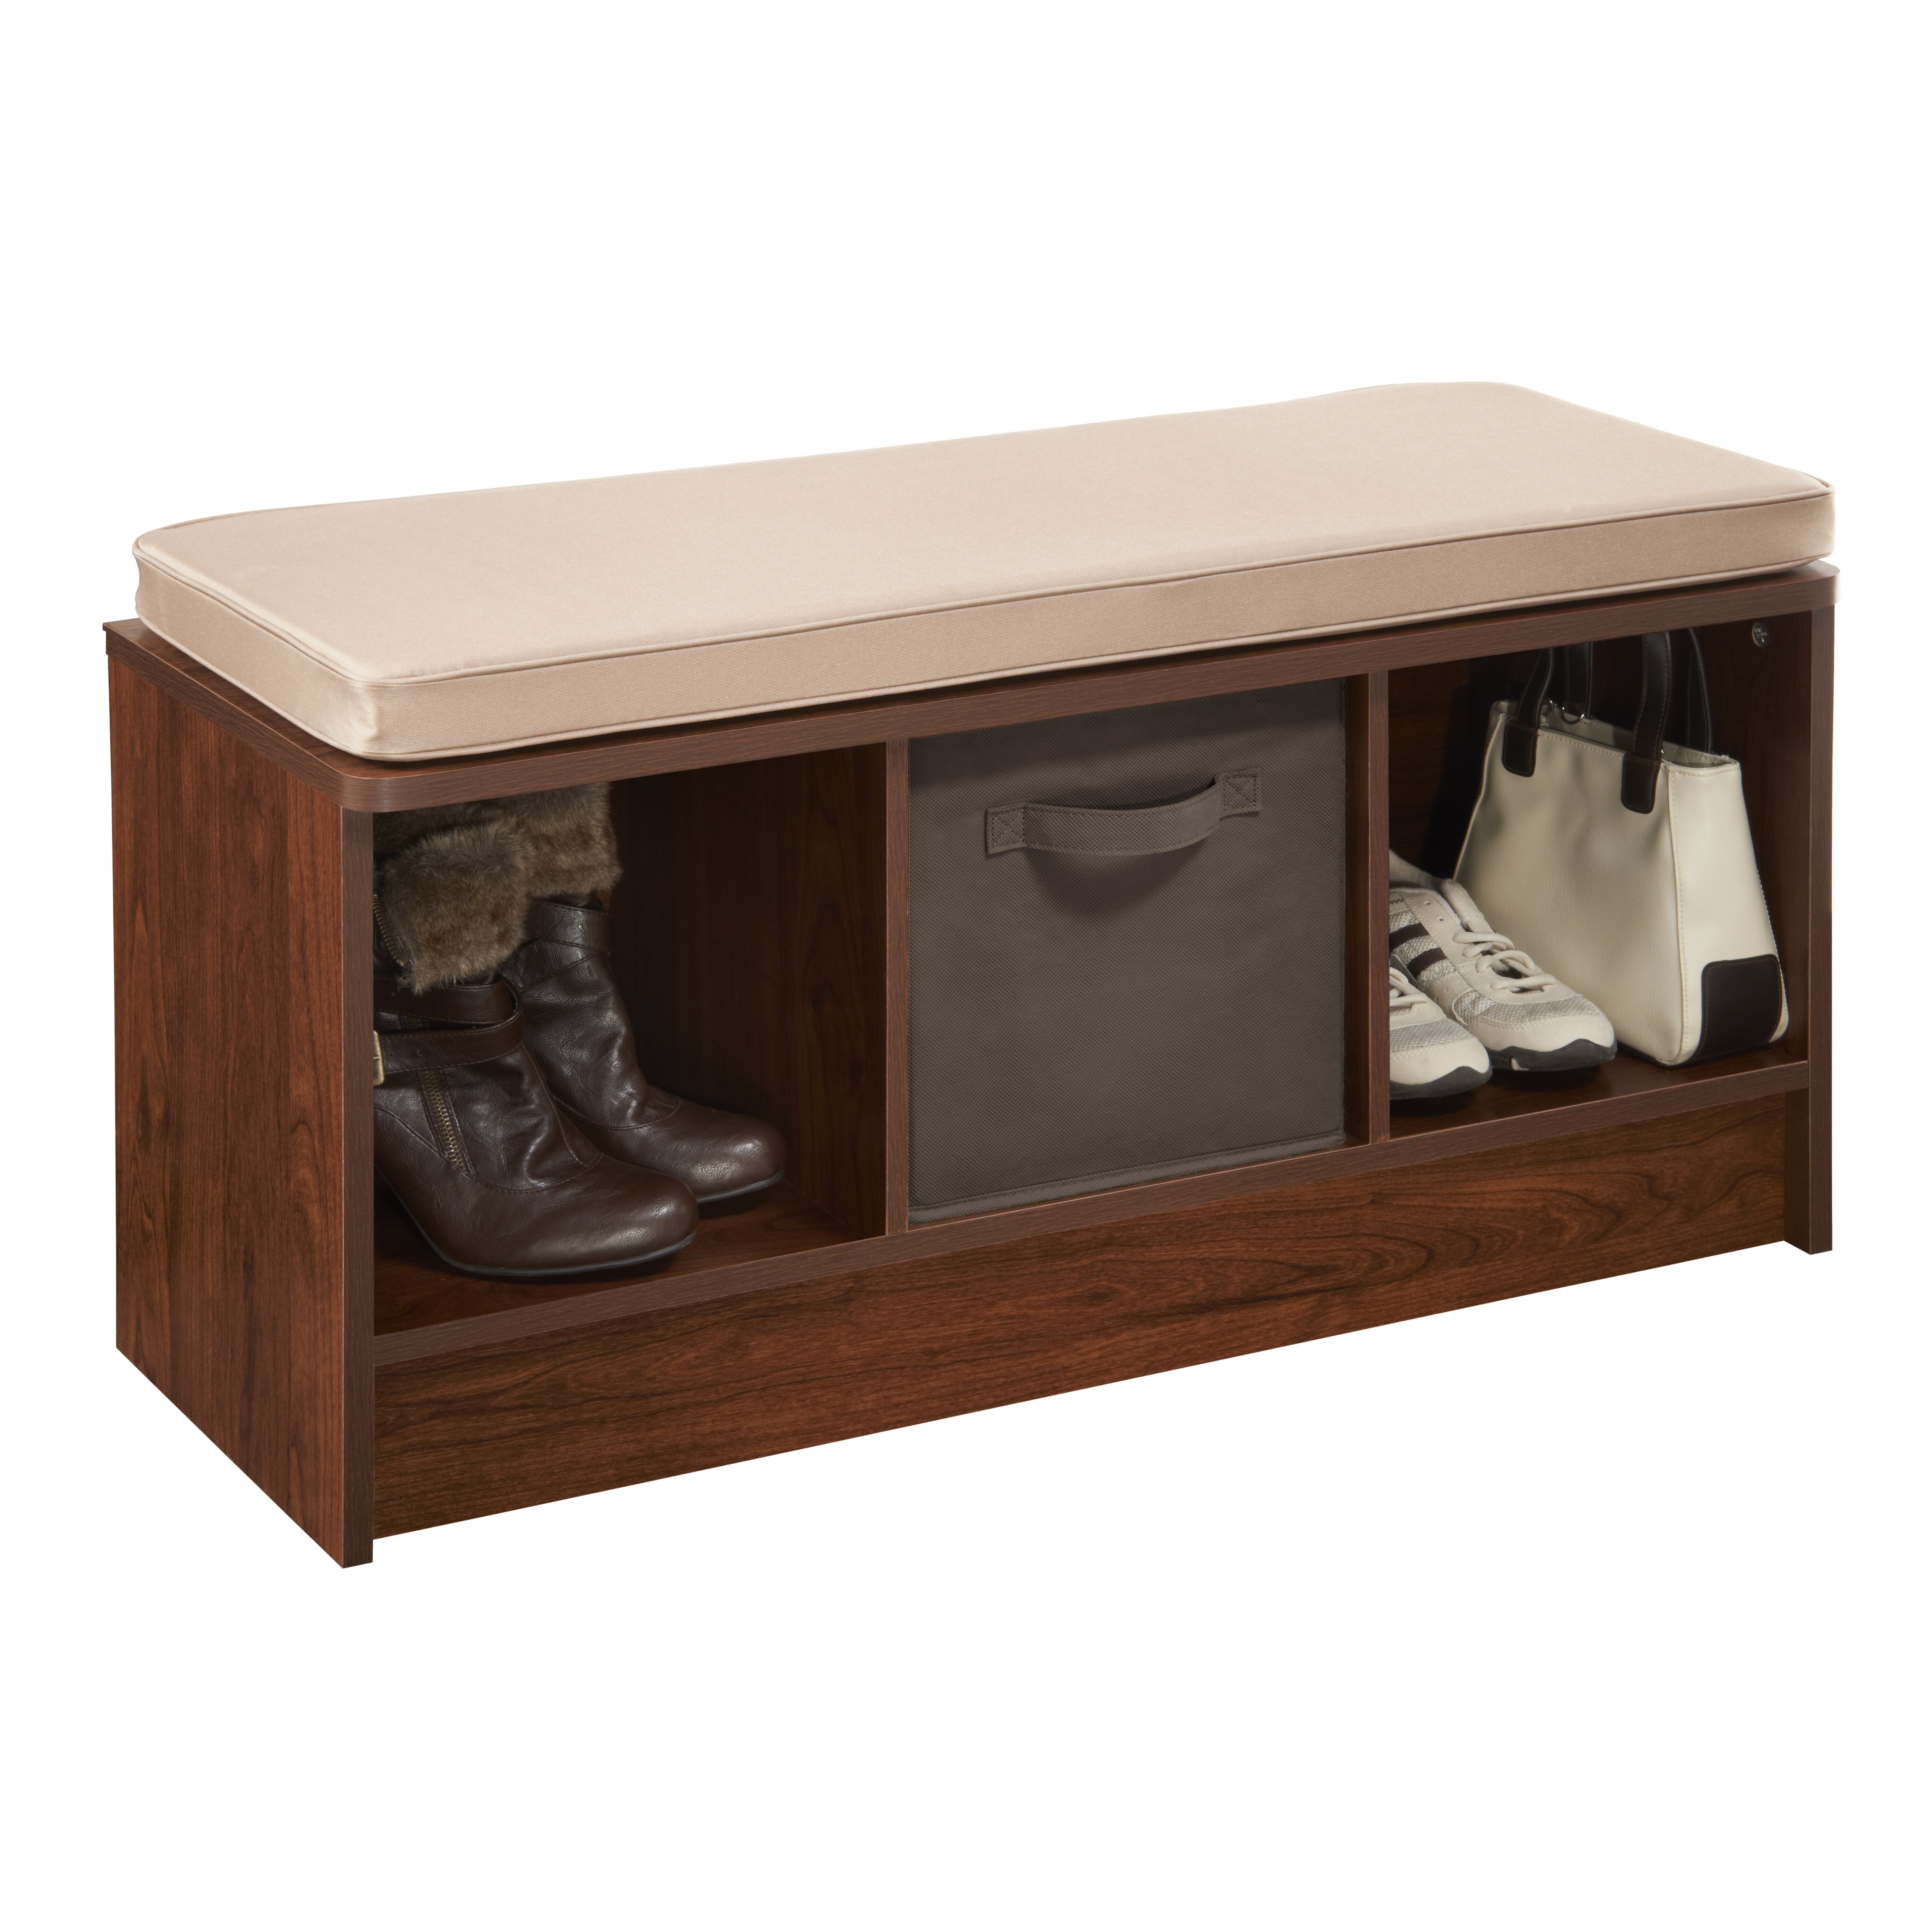 Closetmaid Cubeicals Upholstered Storage Entryway Bench